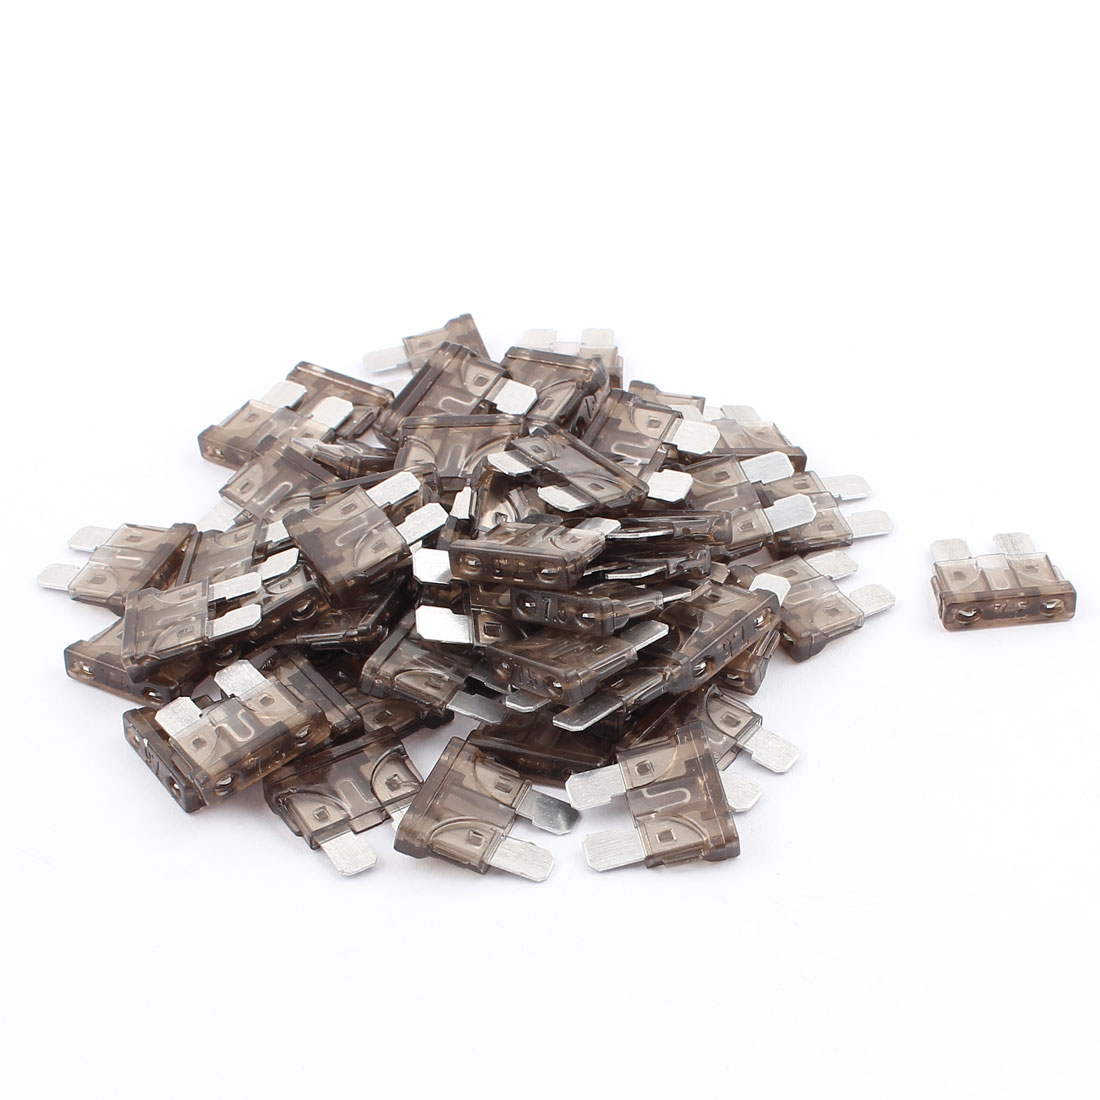 60pcs Automotive Motorcycle Car Caravan SUV Boat ATC ATO Mini Blade Fuses 7.5A Gray